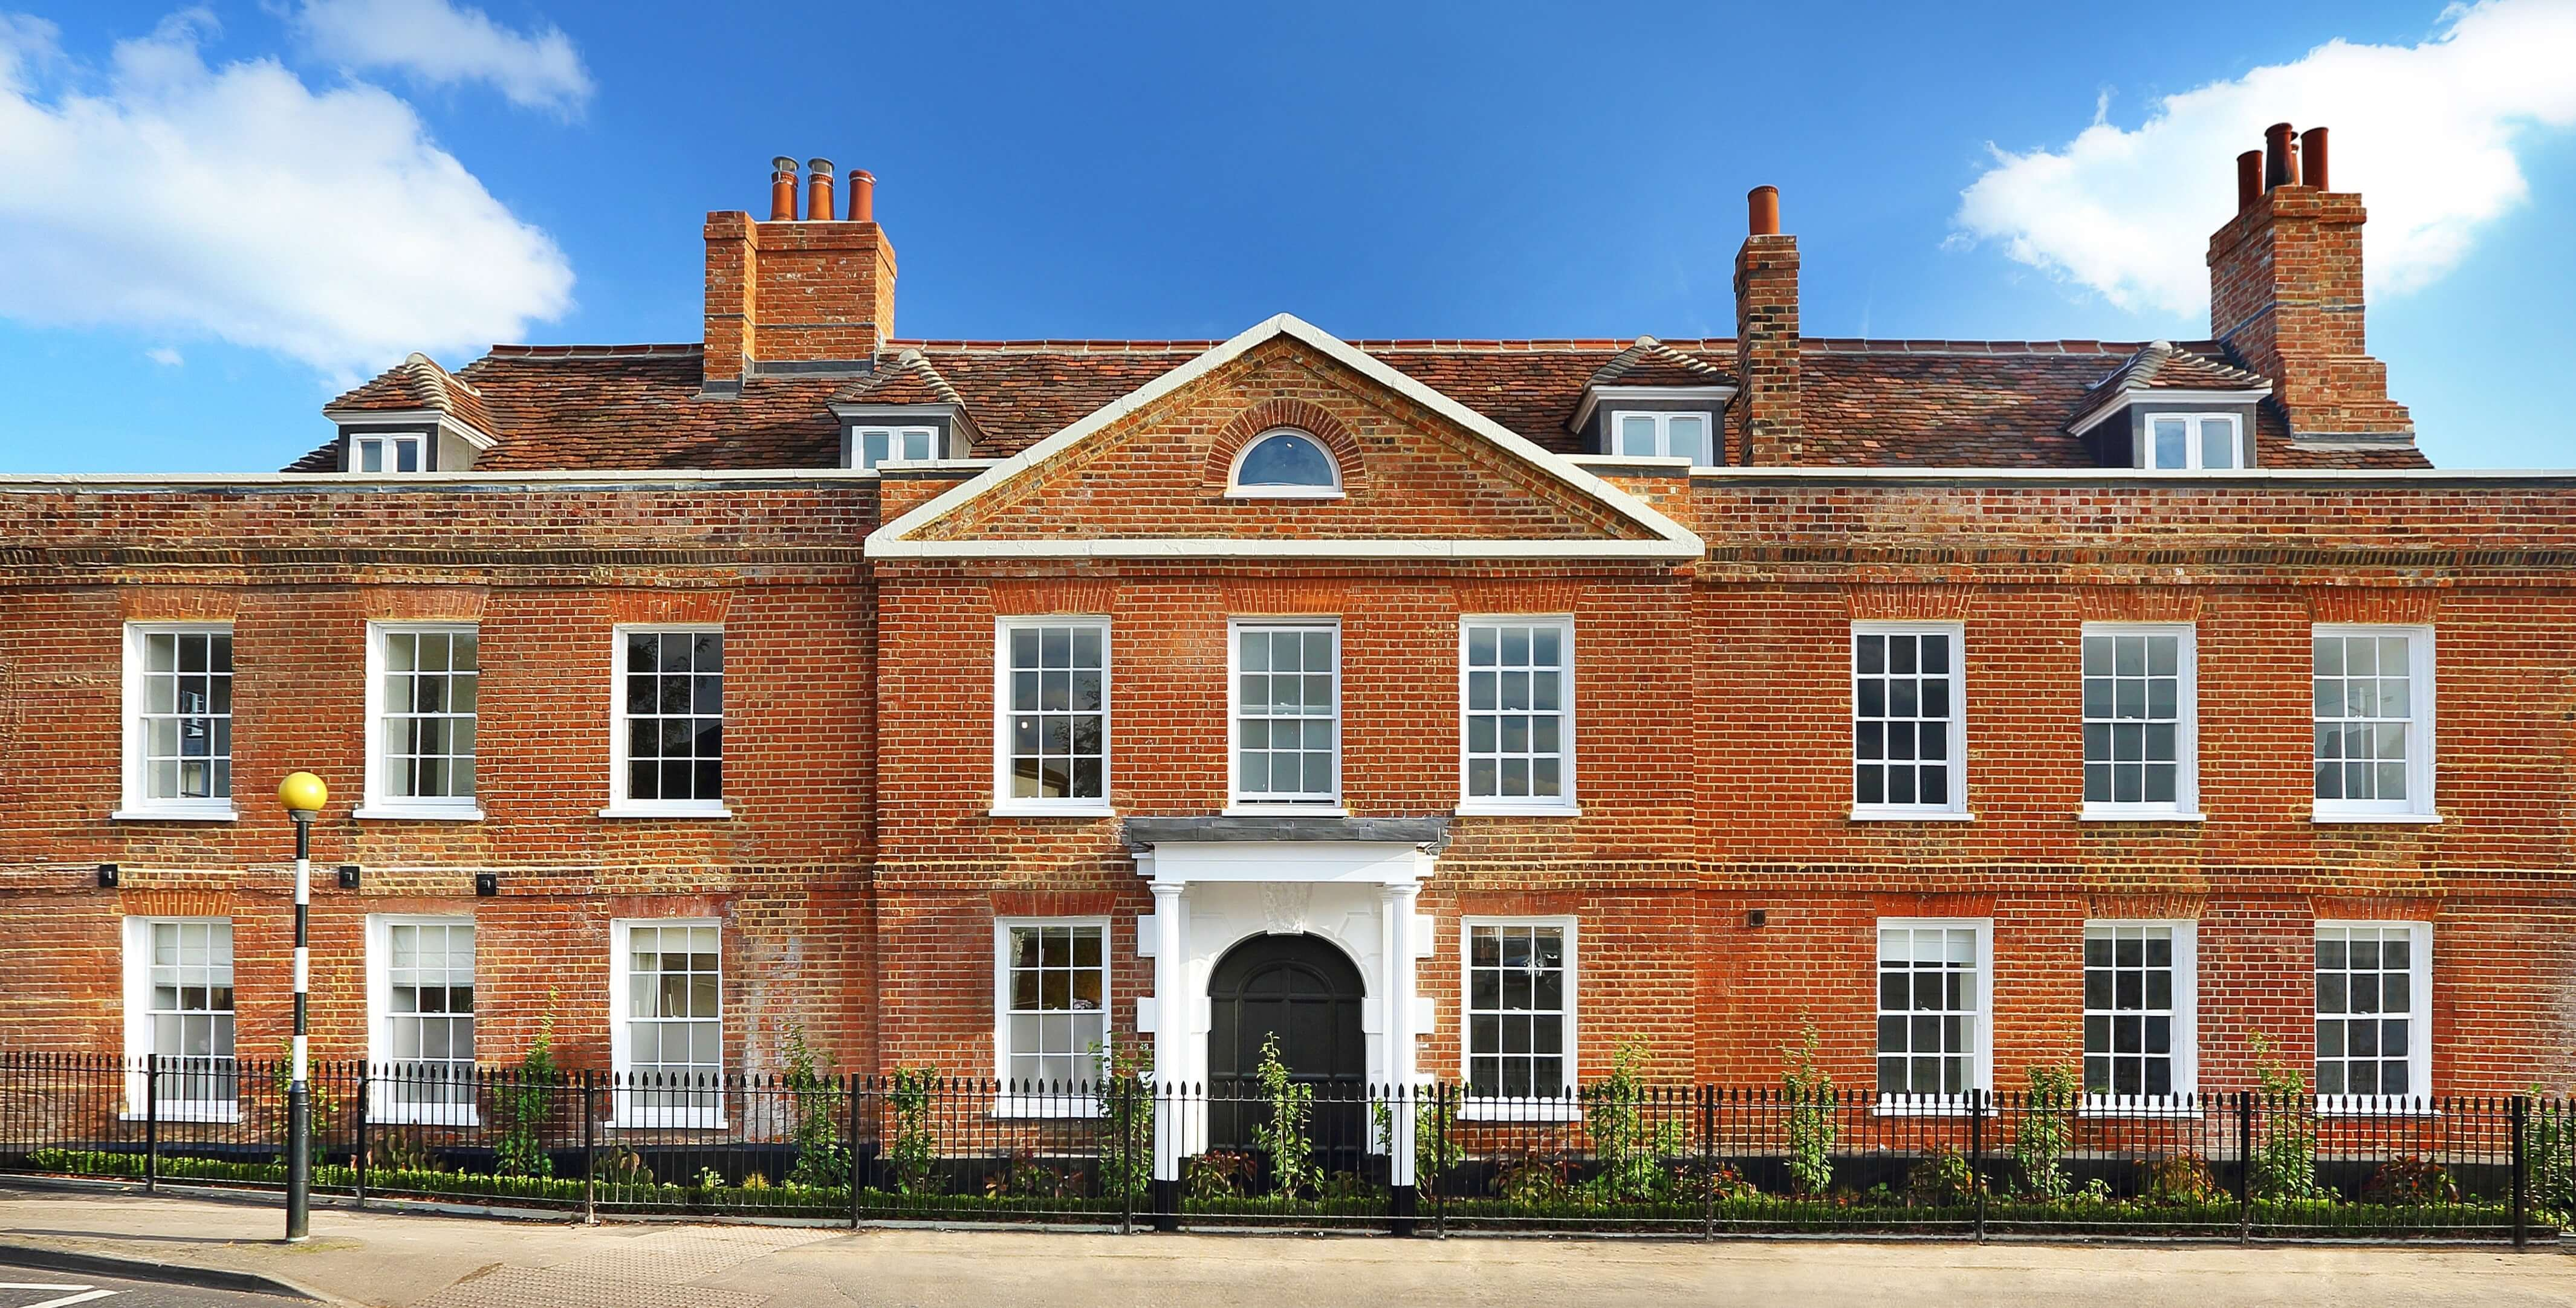 Grade II listed refurbishment project in Cobham